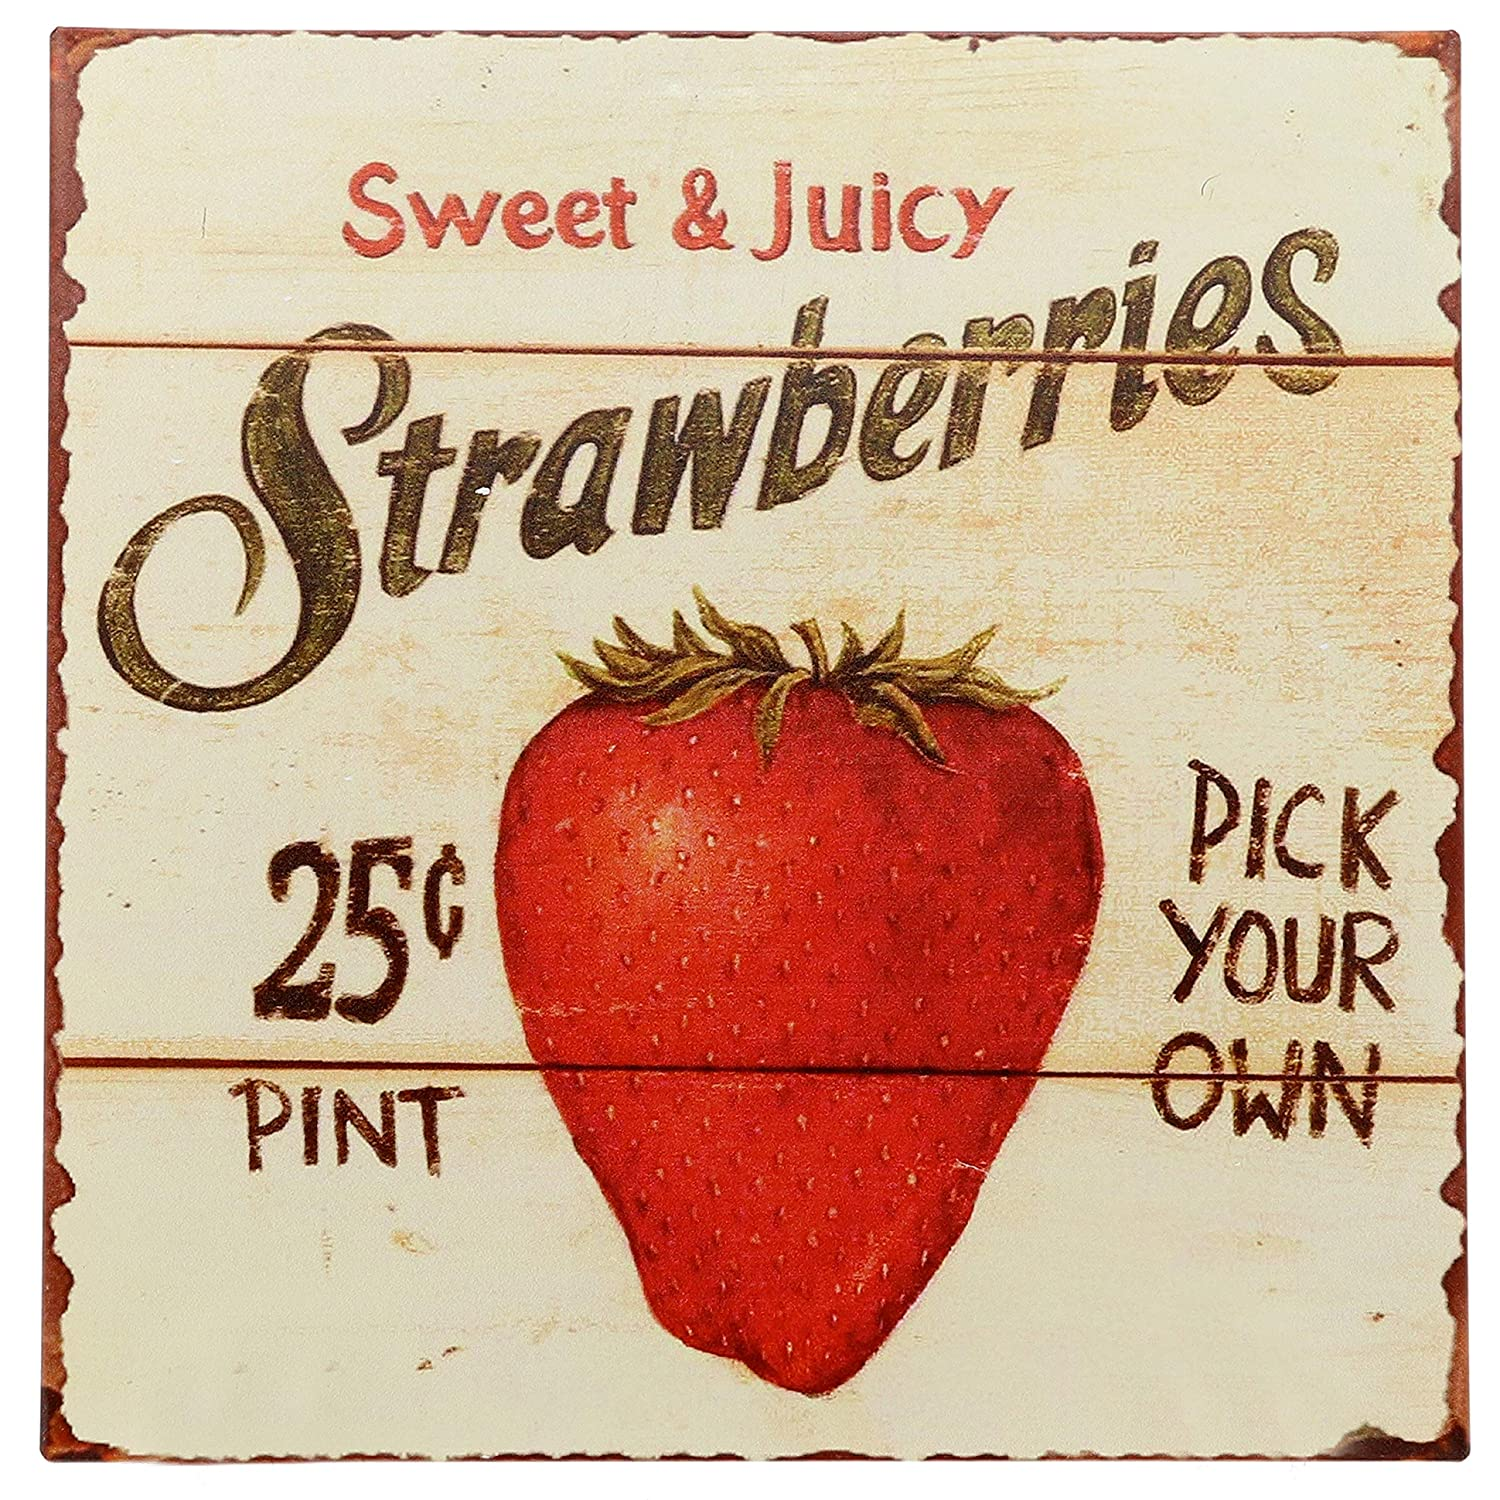 "Barnyard Designs Strawberries Pick Your Own Retro Vintage Tin Bar Sign Country Home Decor 11"" x 11"""